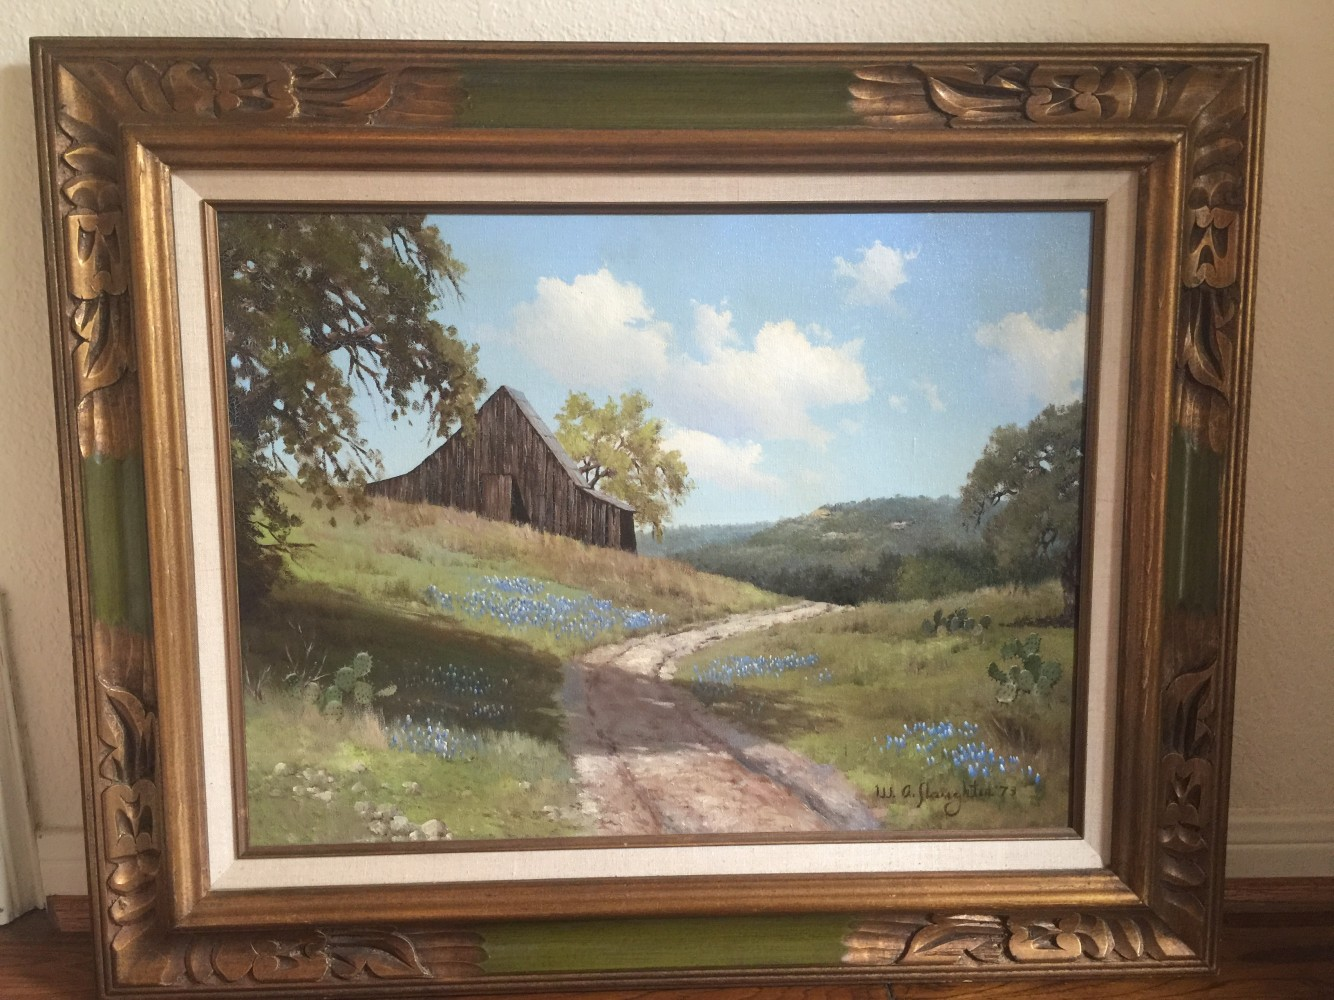 Bluebonnets With Road, Barn And Hills 1973 26x32